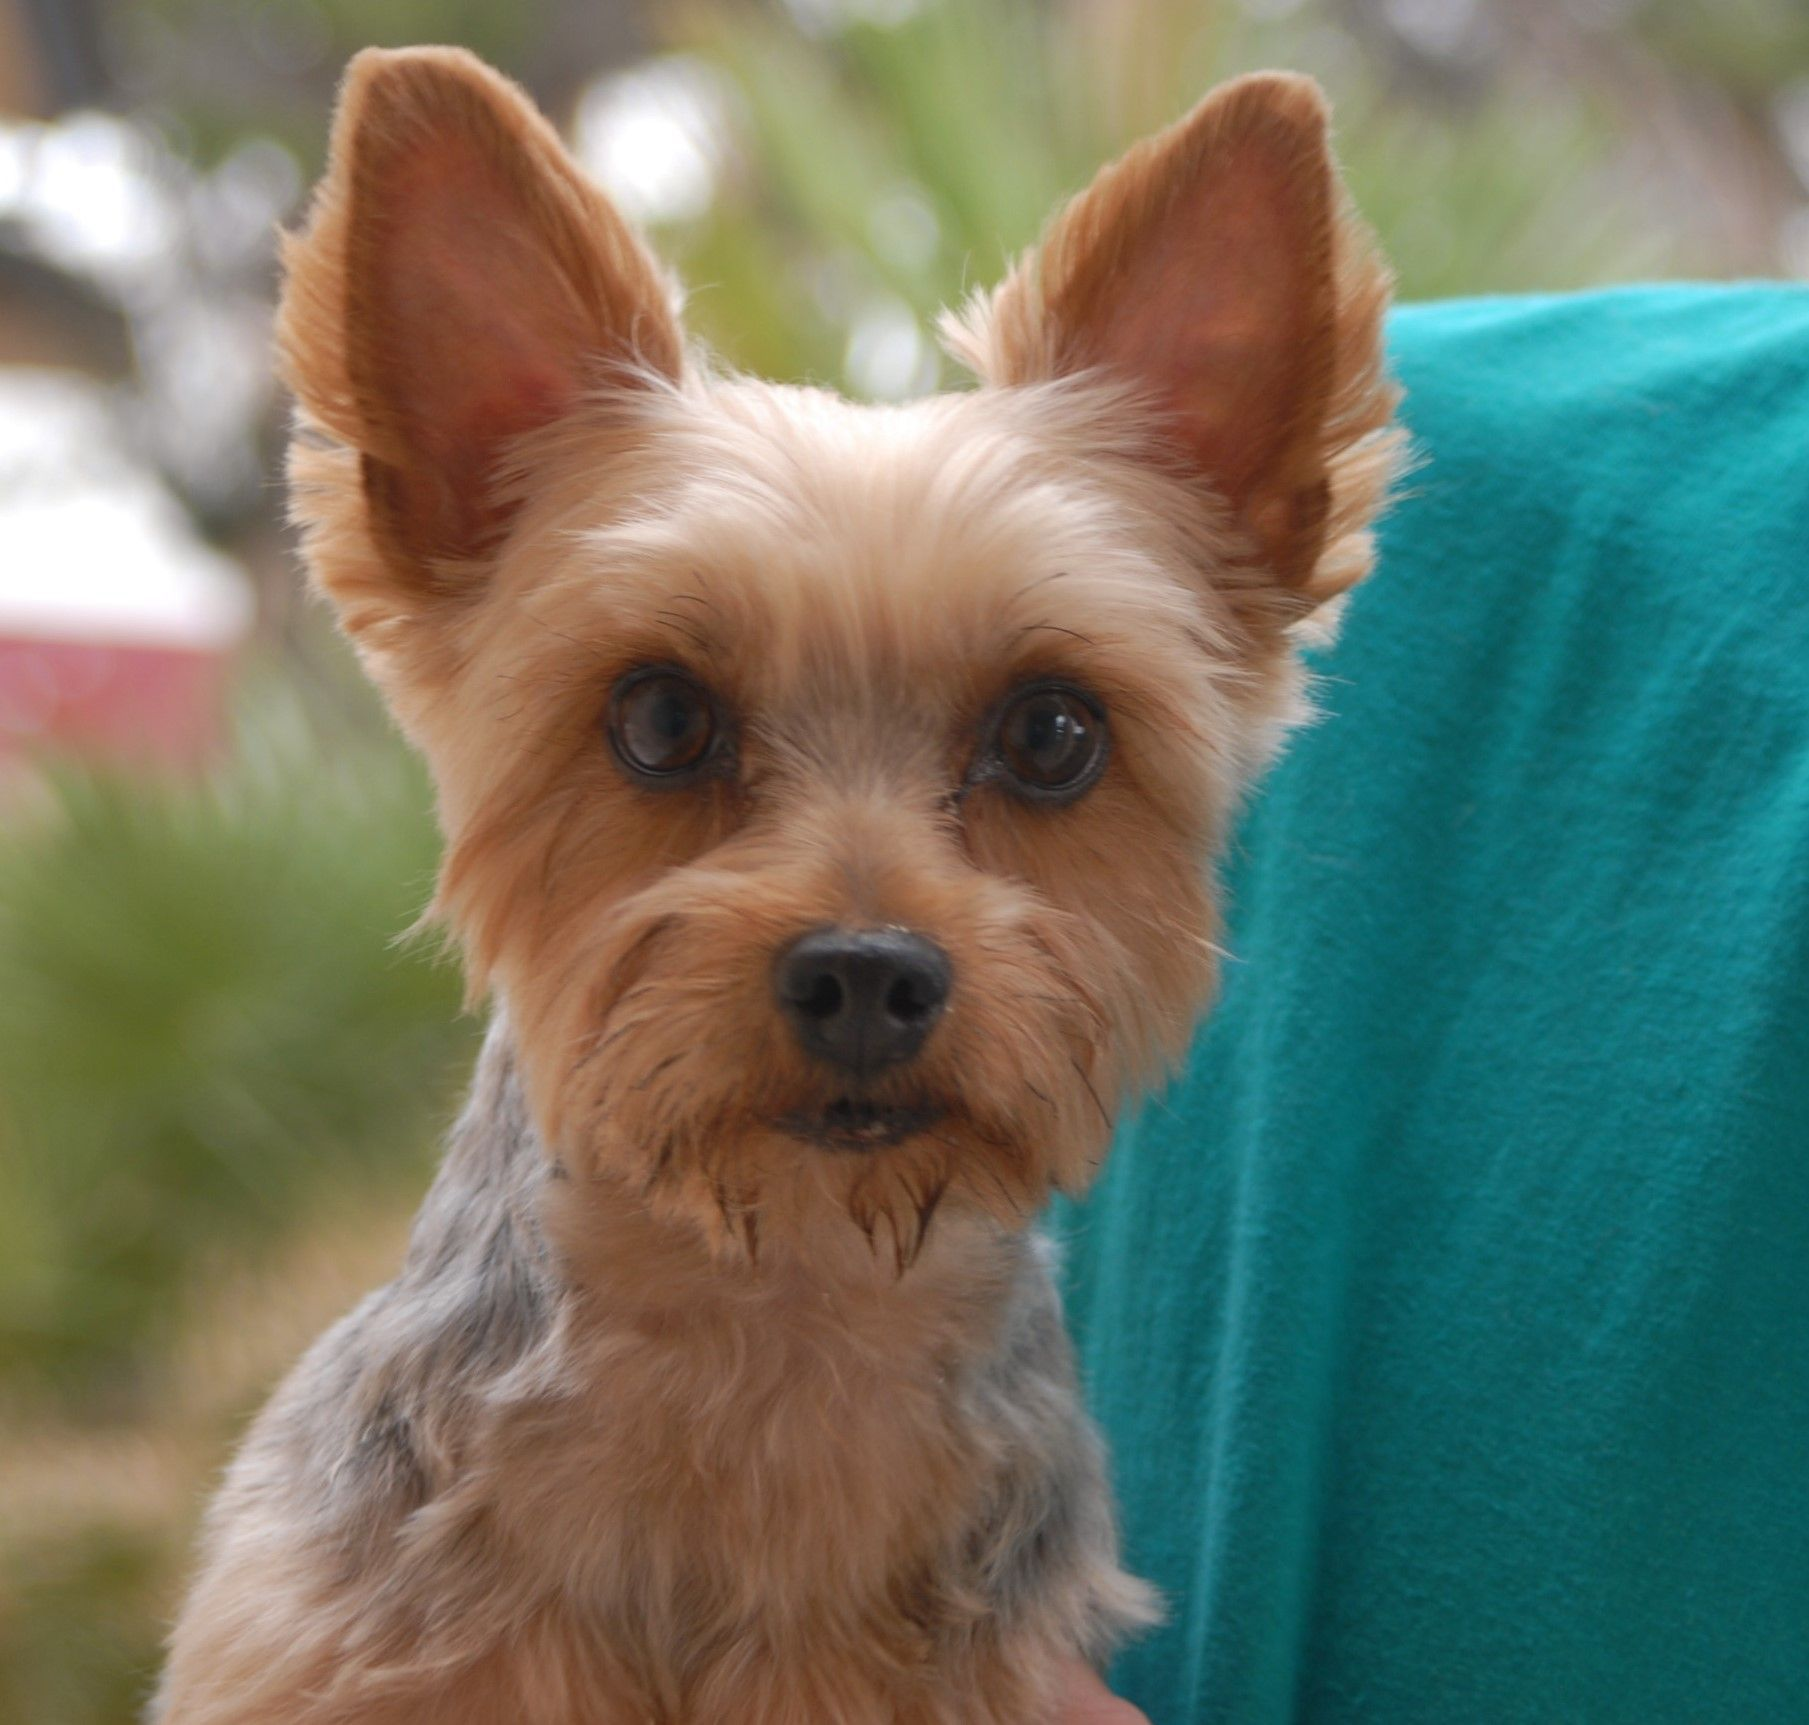 Geenie is a darling young Yorkshire Terrier debuting for